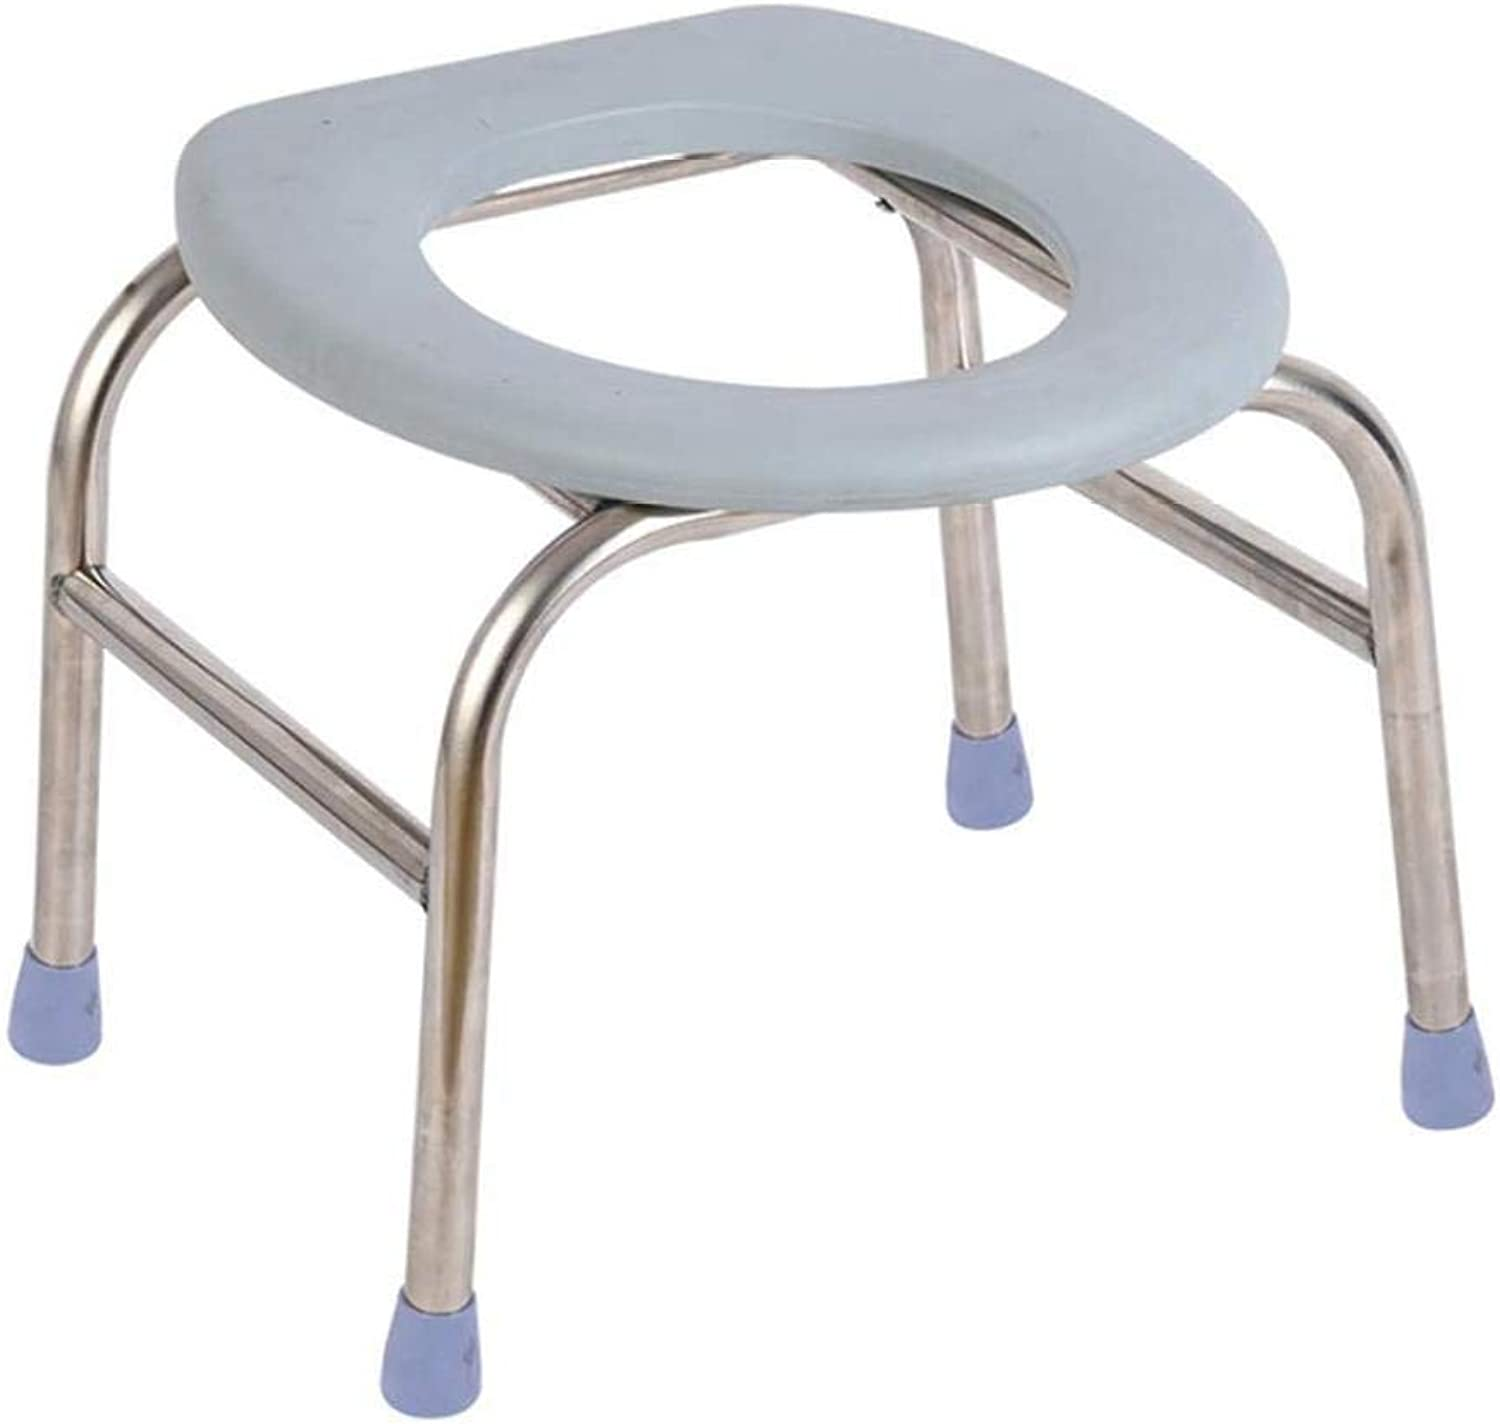 Portable Bathroom Bench, Bathroom Bench, Commode Chair, Padded Toilet seat, Adjustable Height XSSD001